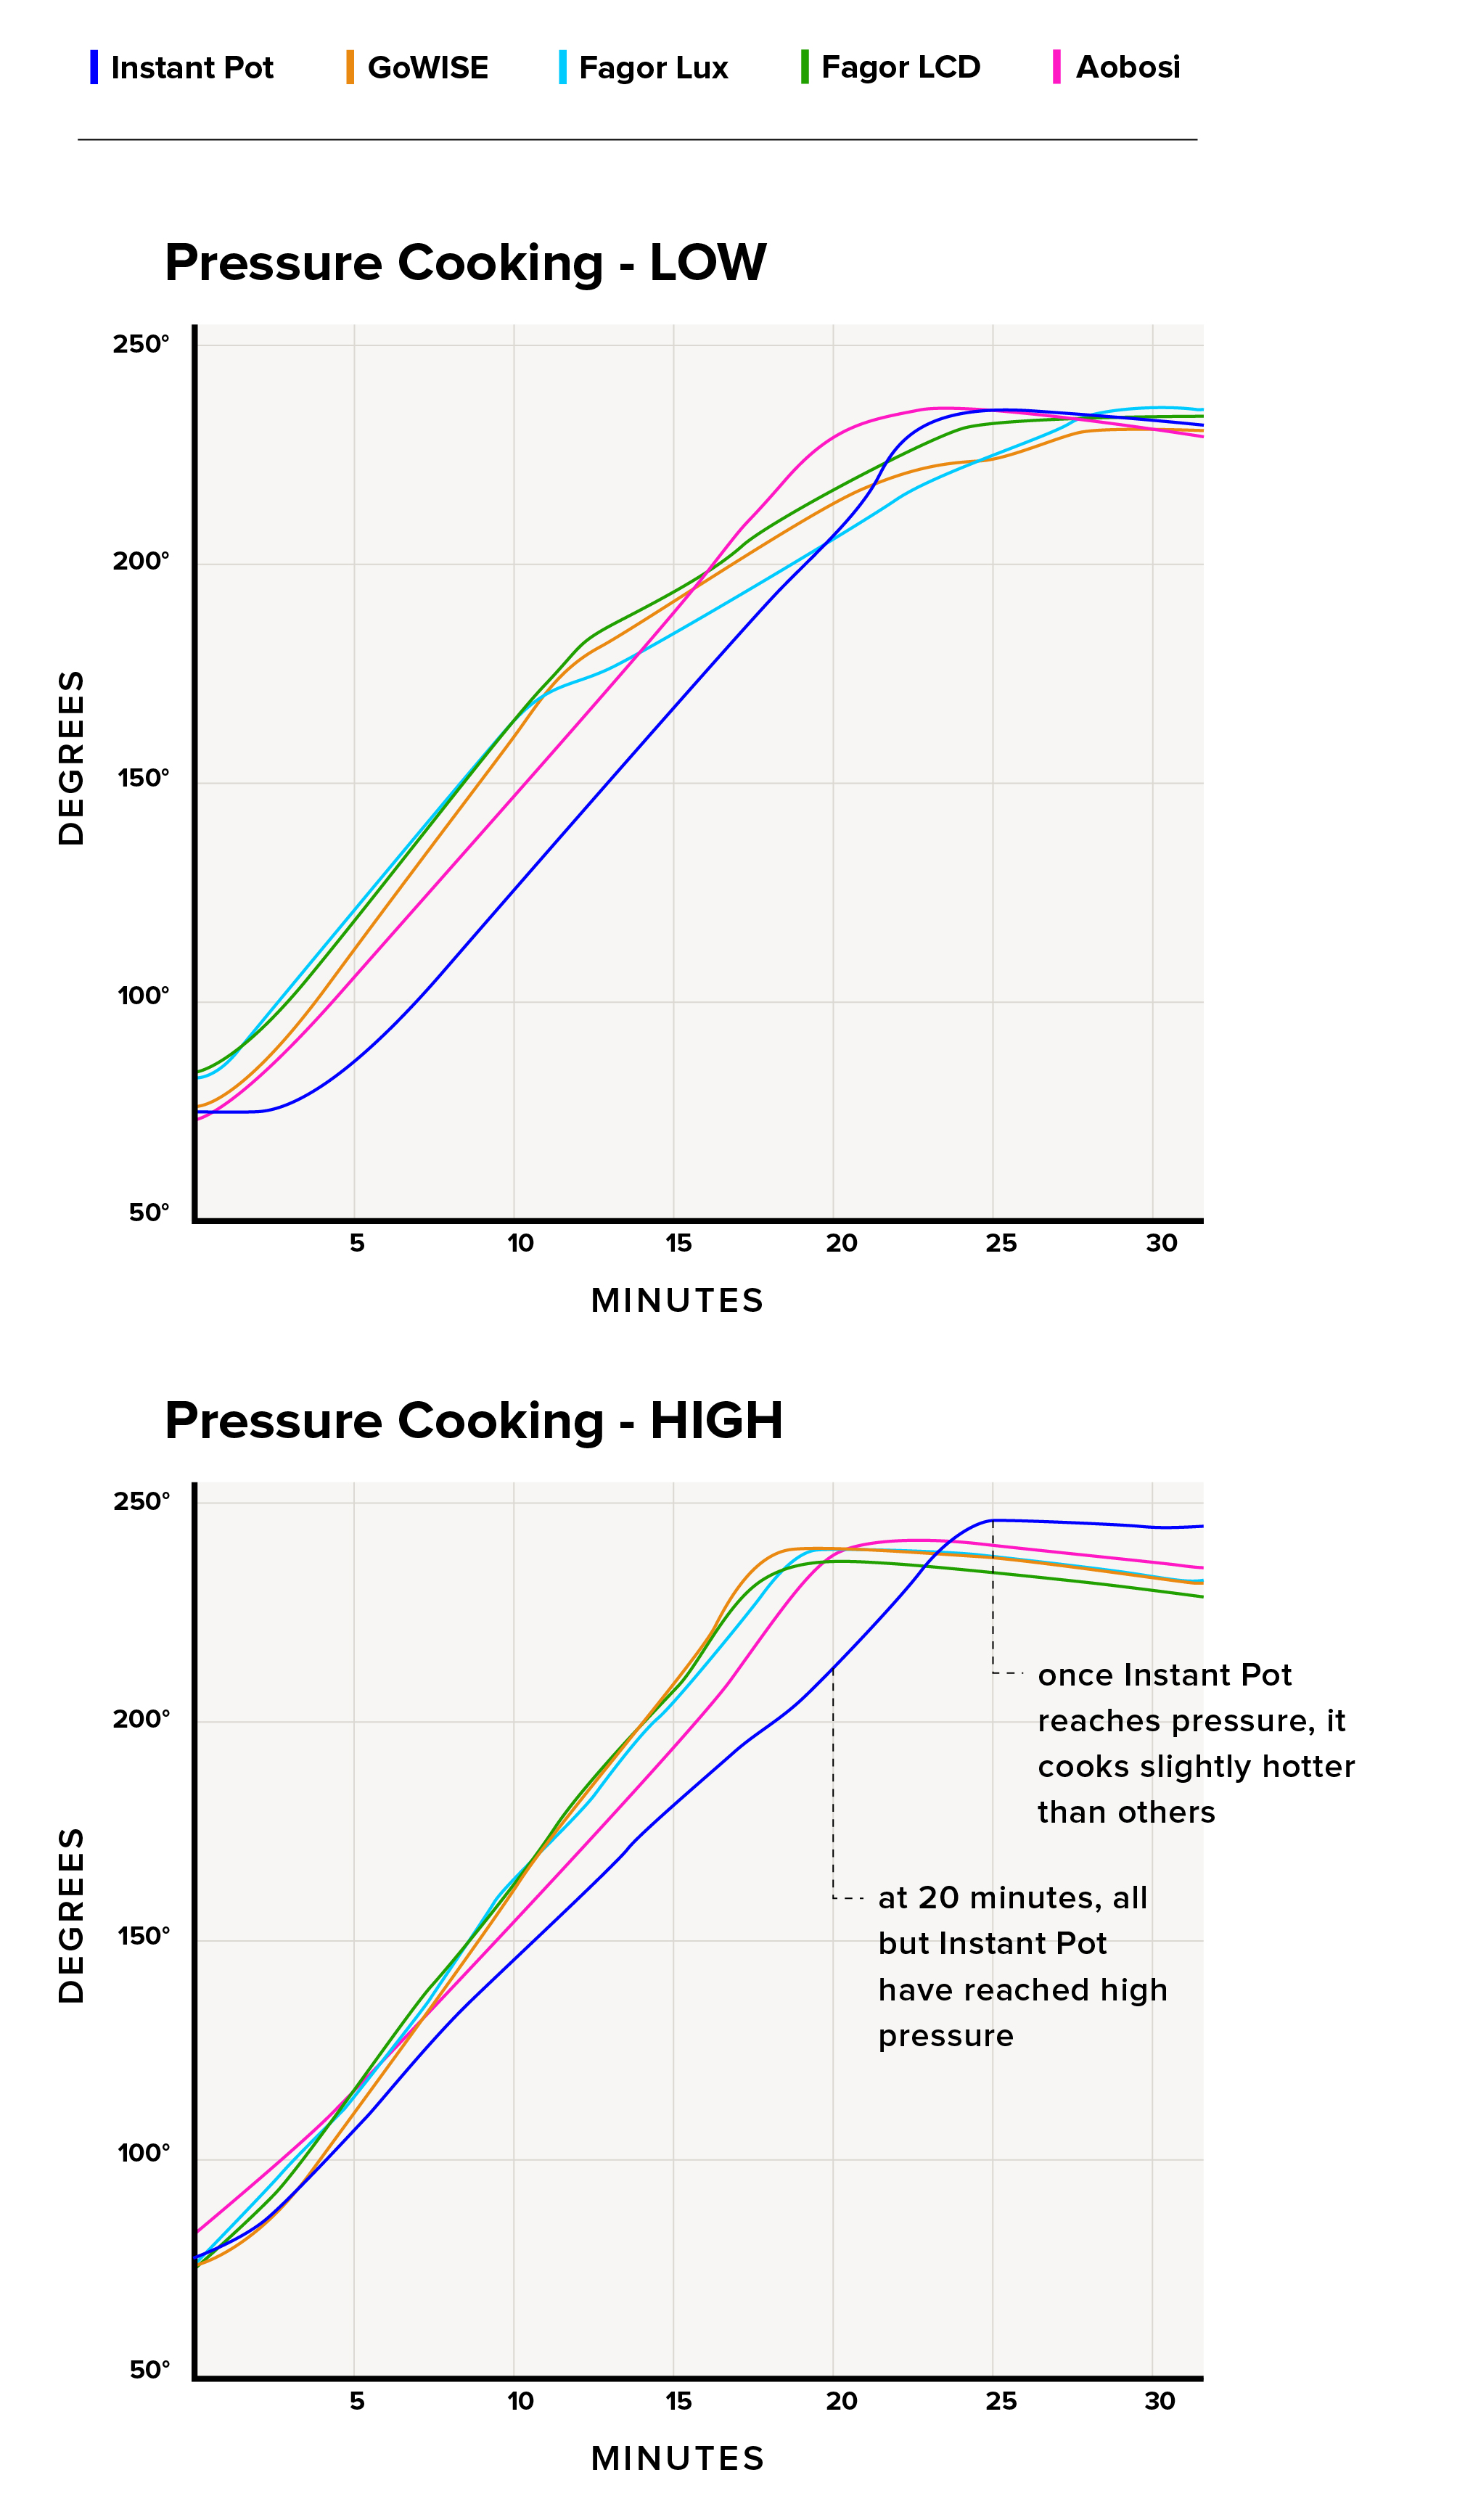 this means multicookers will cook slightly slower than stovetop pressure  cookers, though still much faster than other cooking methods